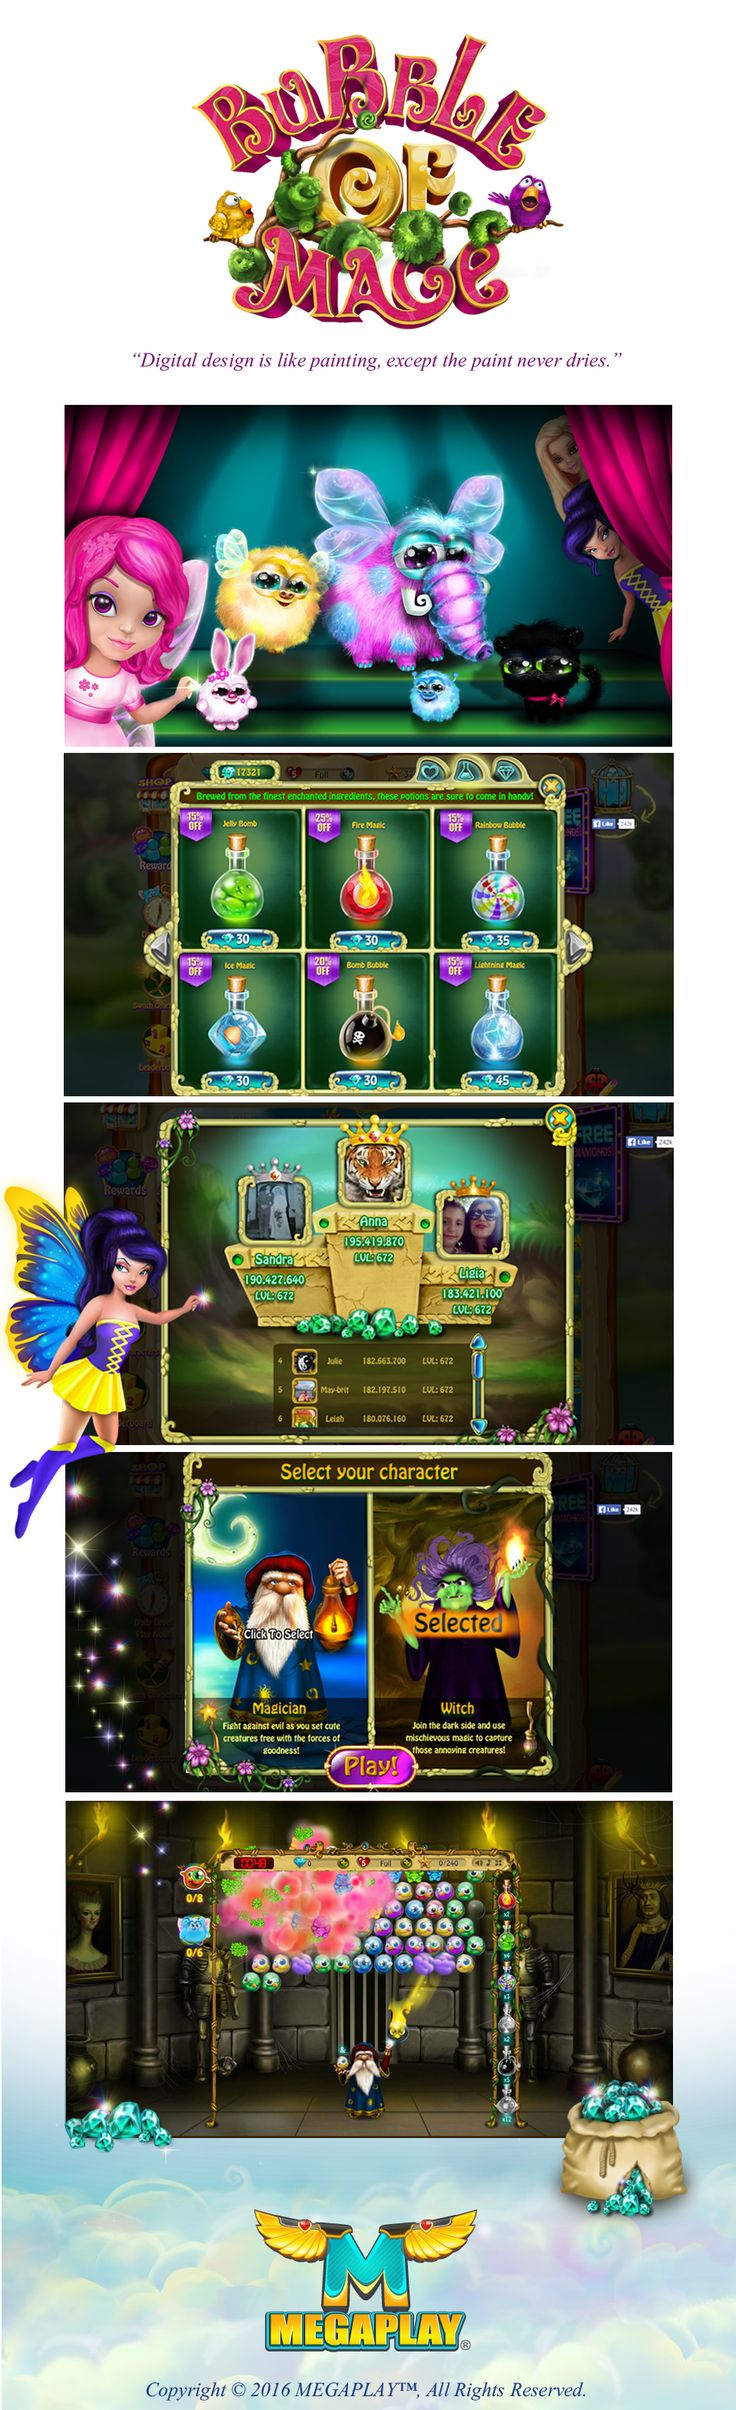 "Game GUI & and characters assets for Facebook puzzle game ""Bubble Of Mage""."